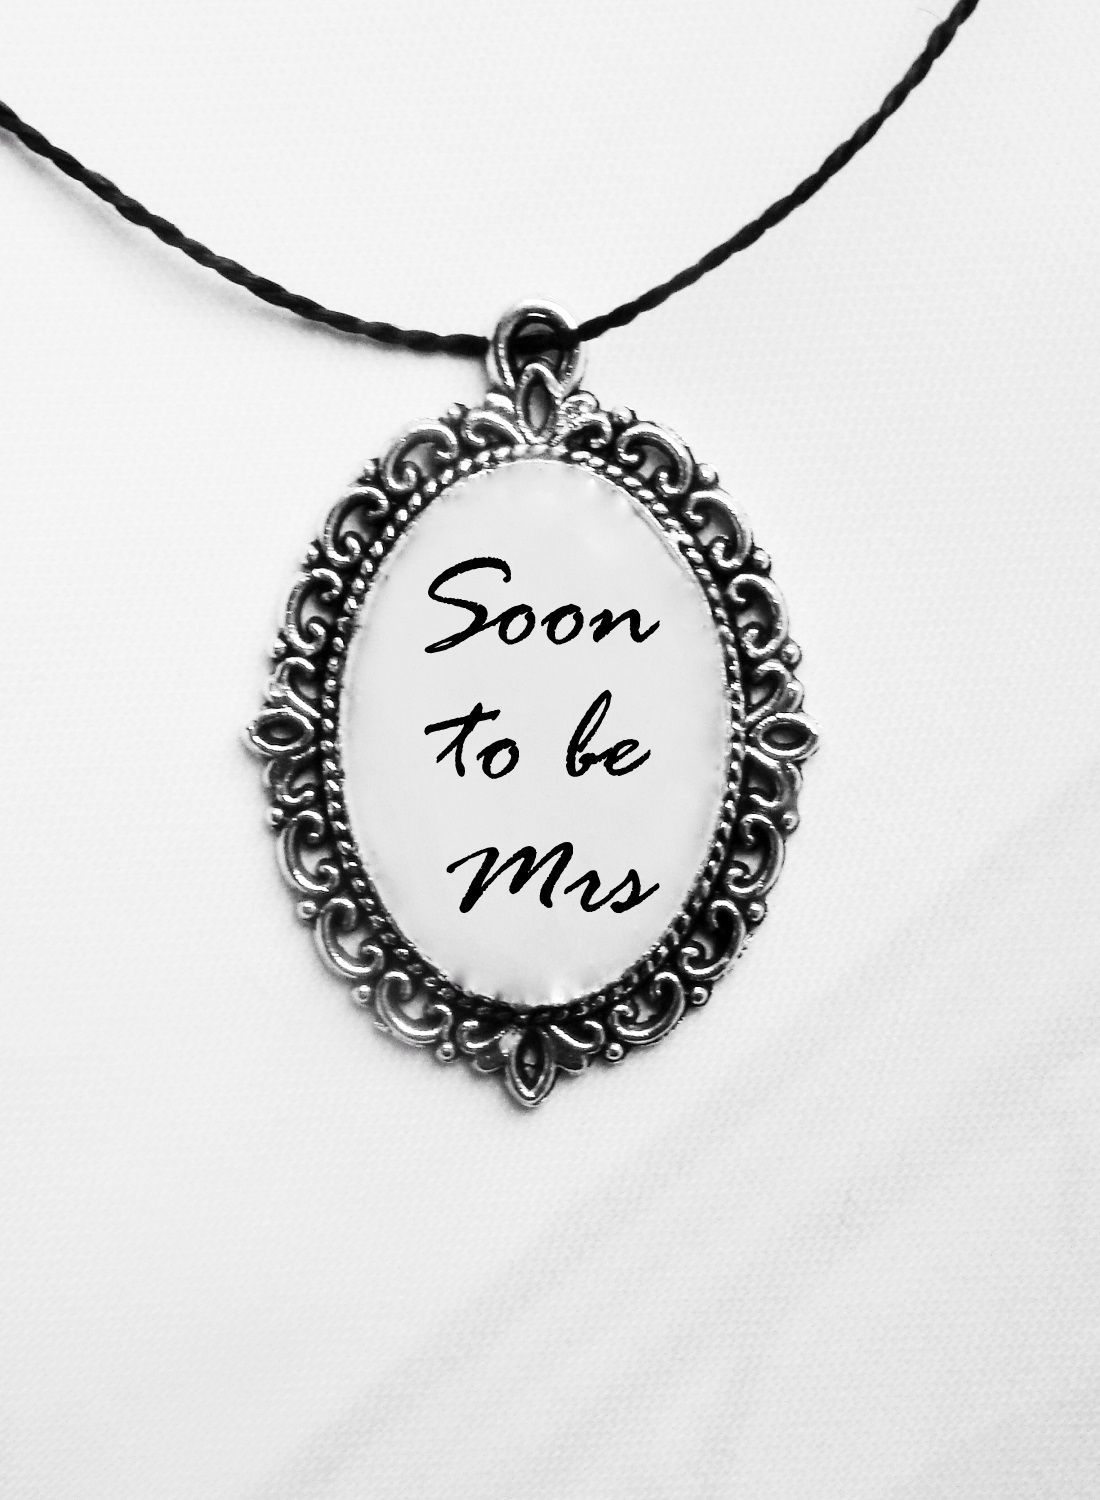 Proposal Soon to be mrs Custom writing Proposal Soon to be mrs Custom writing OlaNoche OlaNocheUnderwear Etsy Wedding Ideas Custom personalized text is printed and protec...